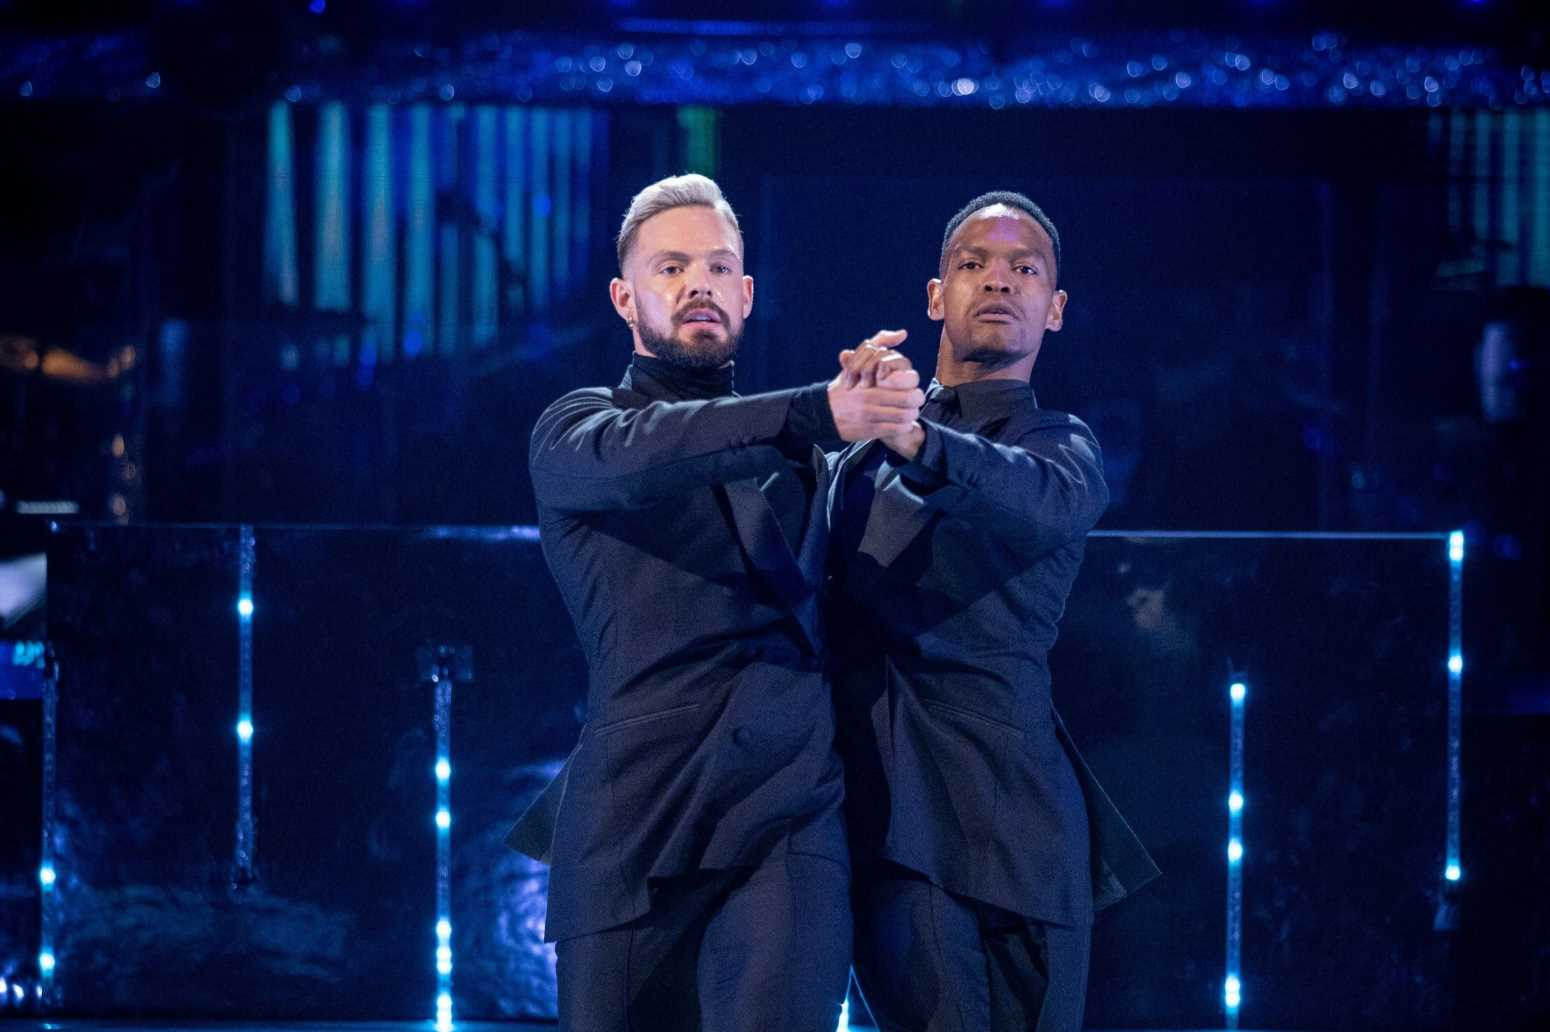 Strictly Come Dancing's first show of the series had lowest rating in 5 years